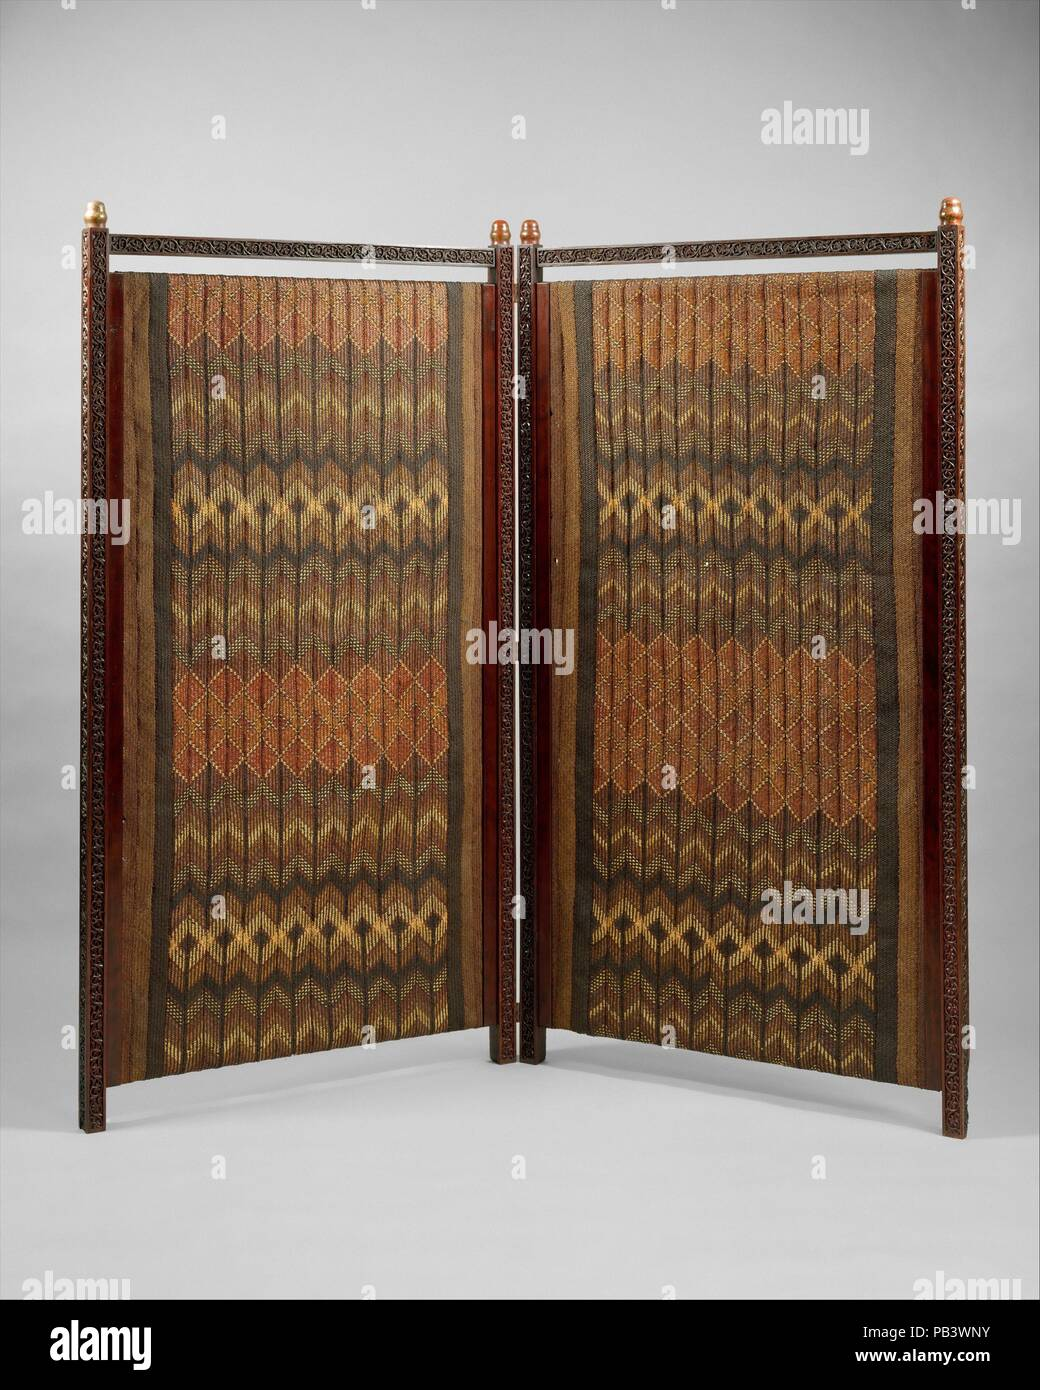 Screen. Culture: American. Designer: Designed by Lockwood de Forest (American, New York 1850-1932 Santa Barbara, California). Dimensions: 65 x 69 3/4 x 1 3/4 in. (165.1 x 177.2 x 4.4 cm). Date: ca. 1881-90.  With its carved teak frame, vividly patterned plaited matting, and Japanese lacquer and mixed-metal finials, this unusual screen epitomizes the 1880s fascination with exotic styles and materials. The screen's designer, Lockwood de Forest, who was trained as a painter, did much to foster popular taste for such exoticism in decorative arts and architecture during the late nineteenth century. Stock Photo